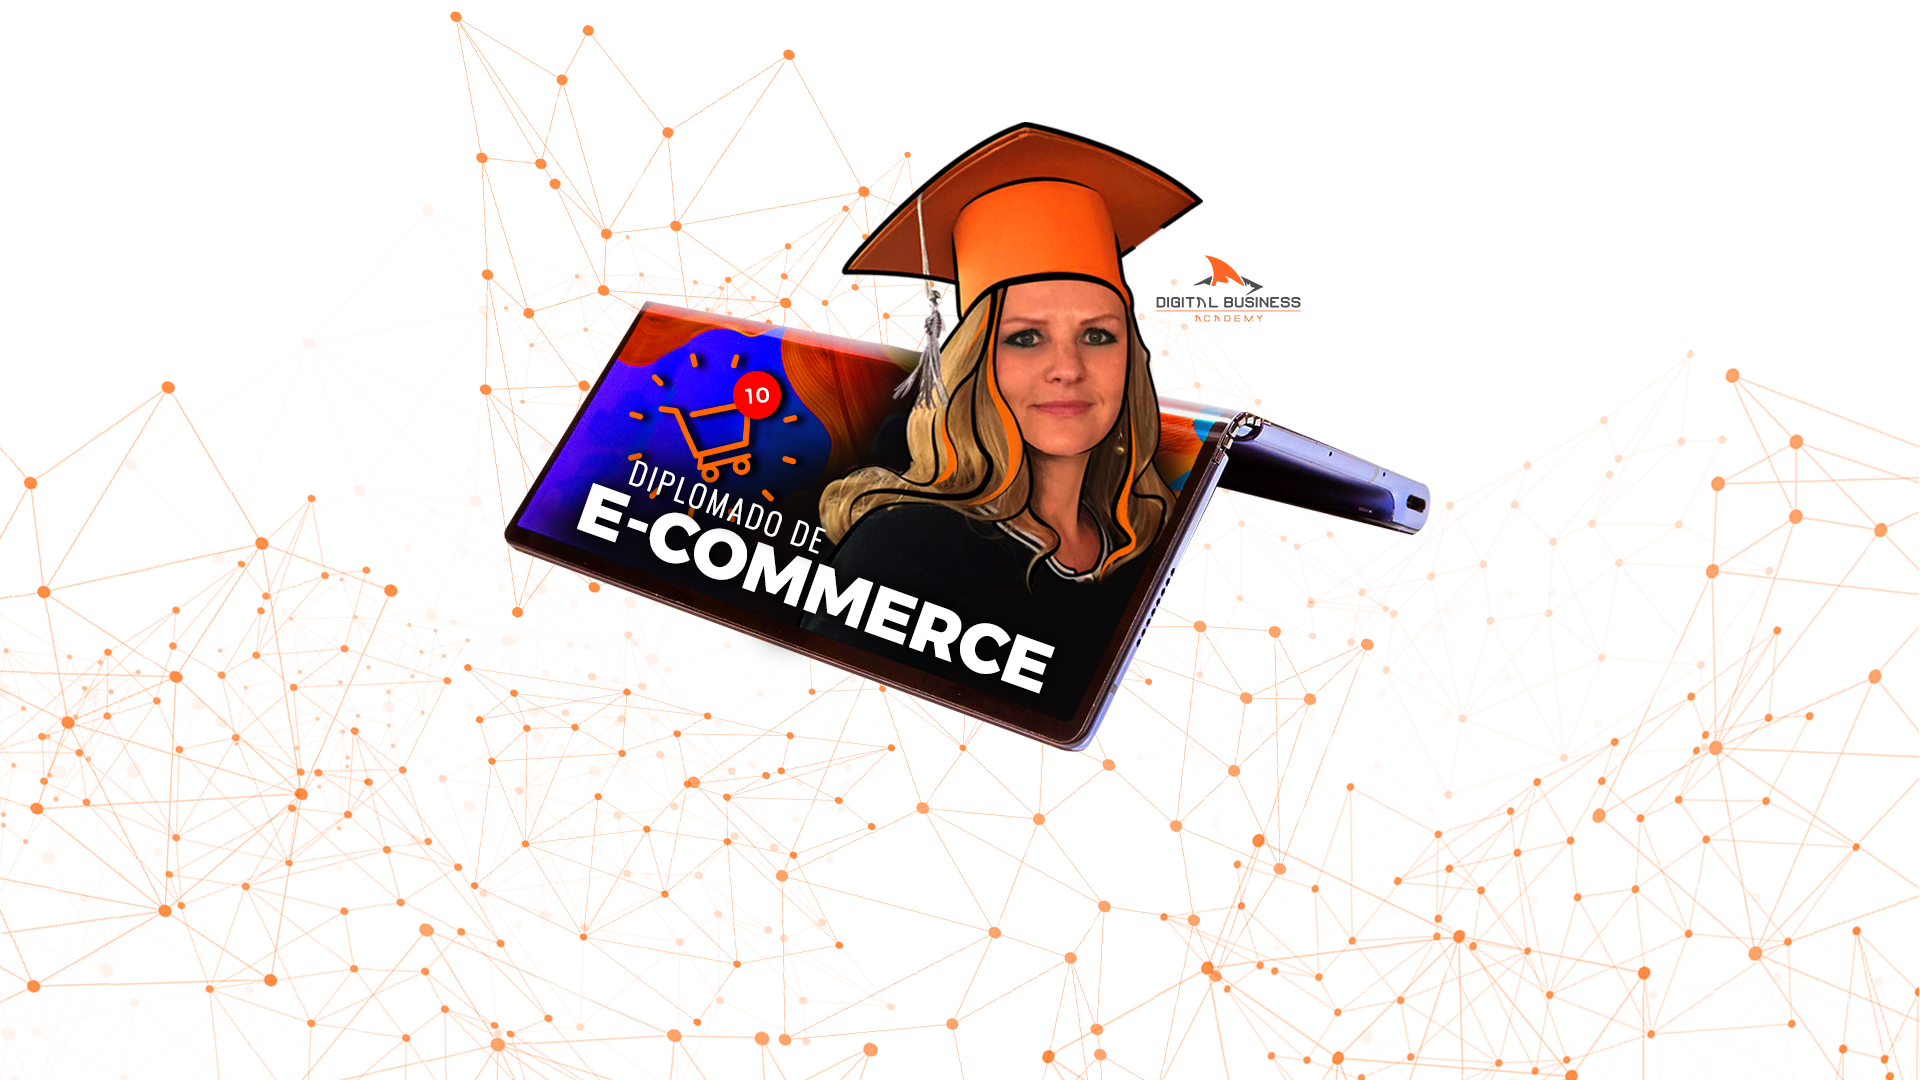 diplomado-e-commerce